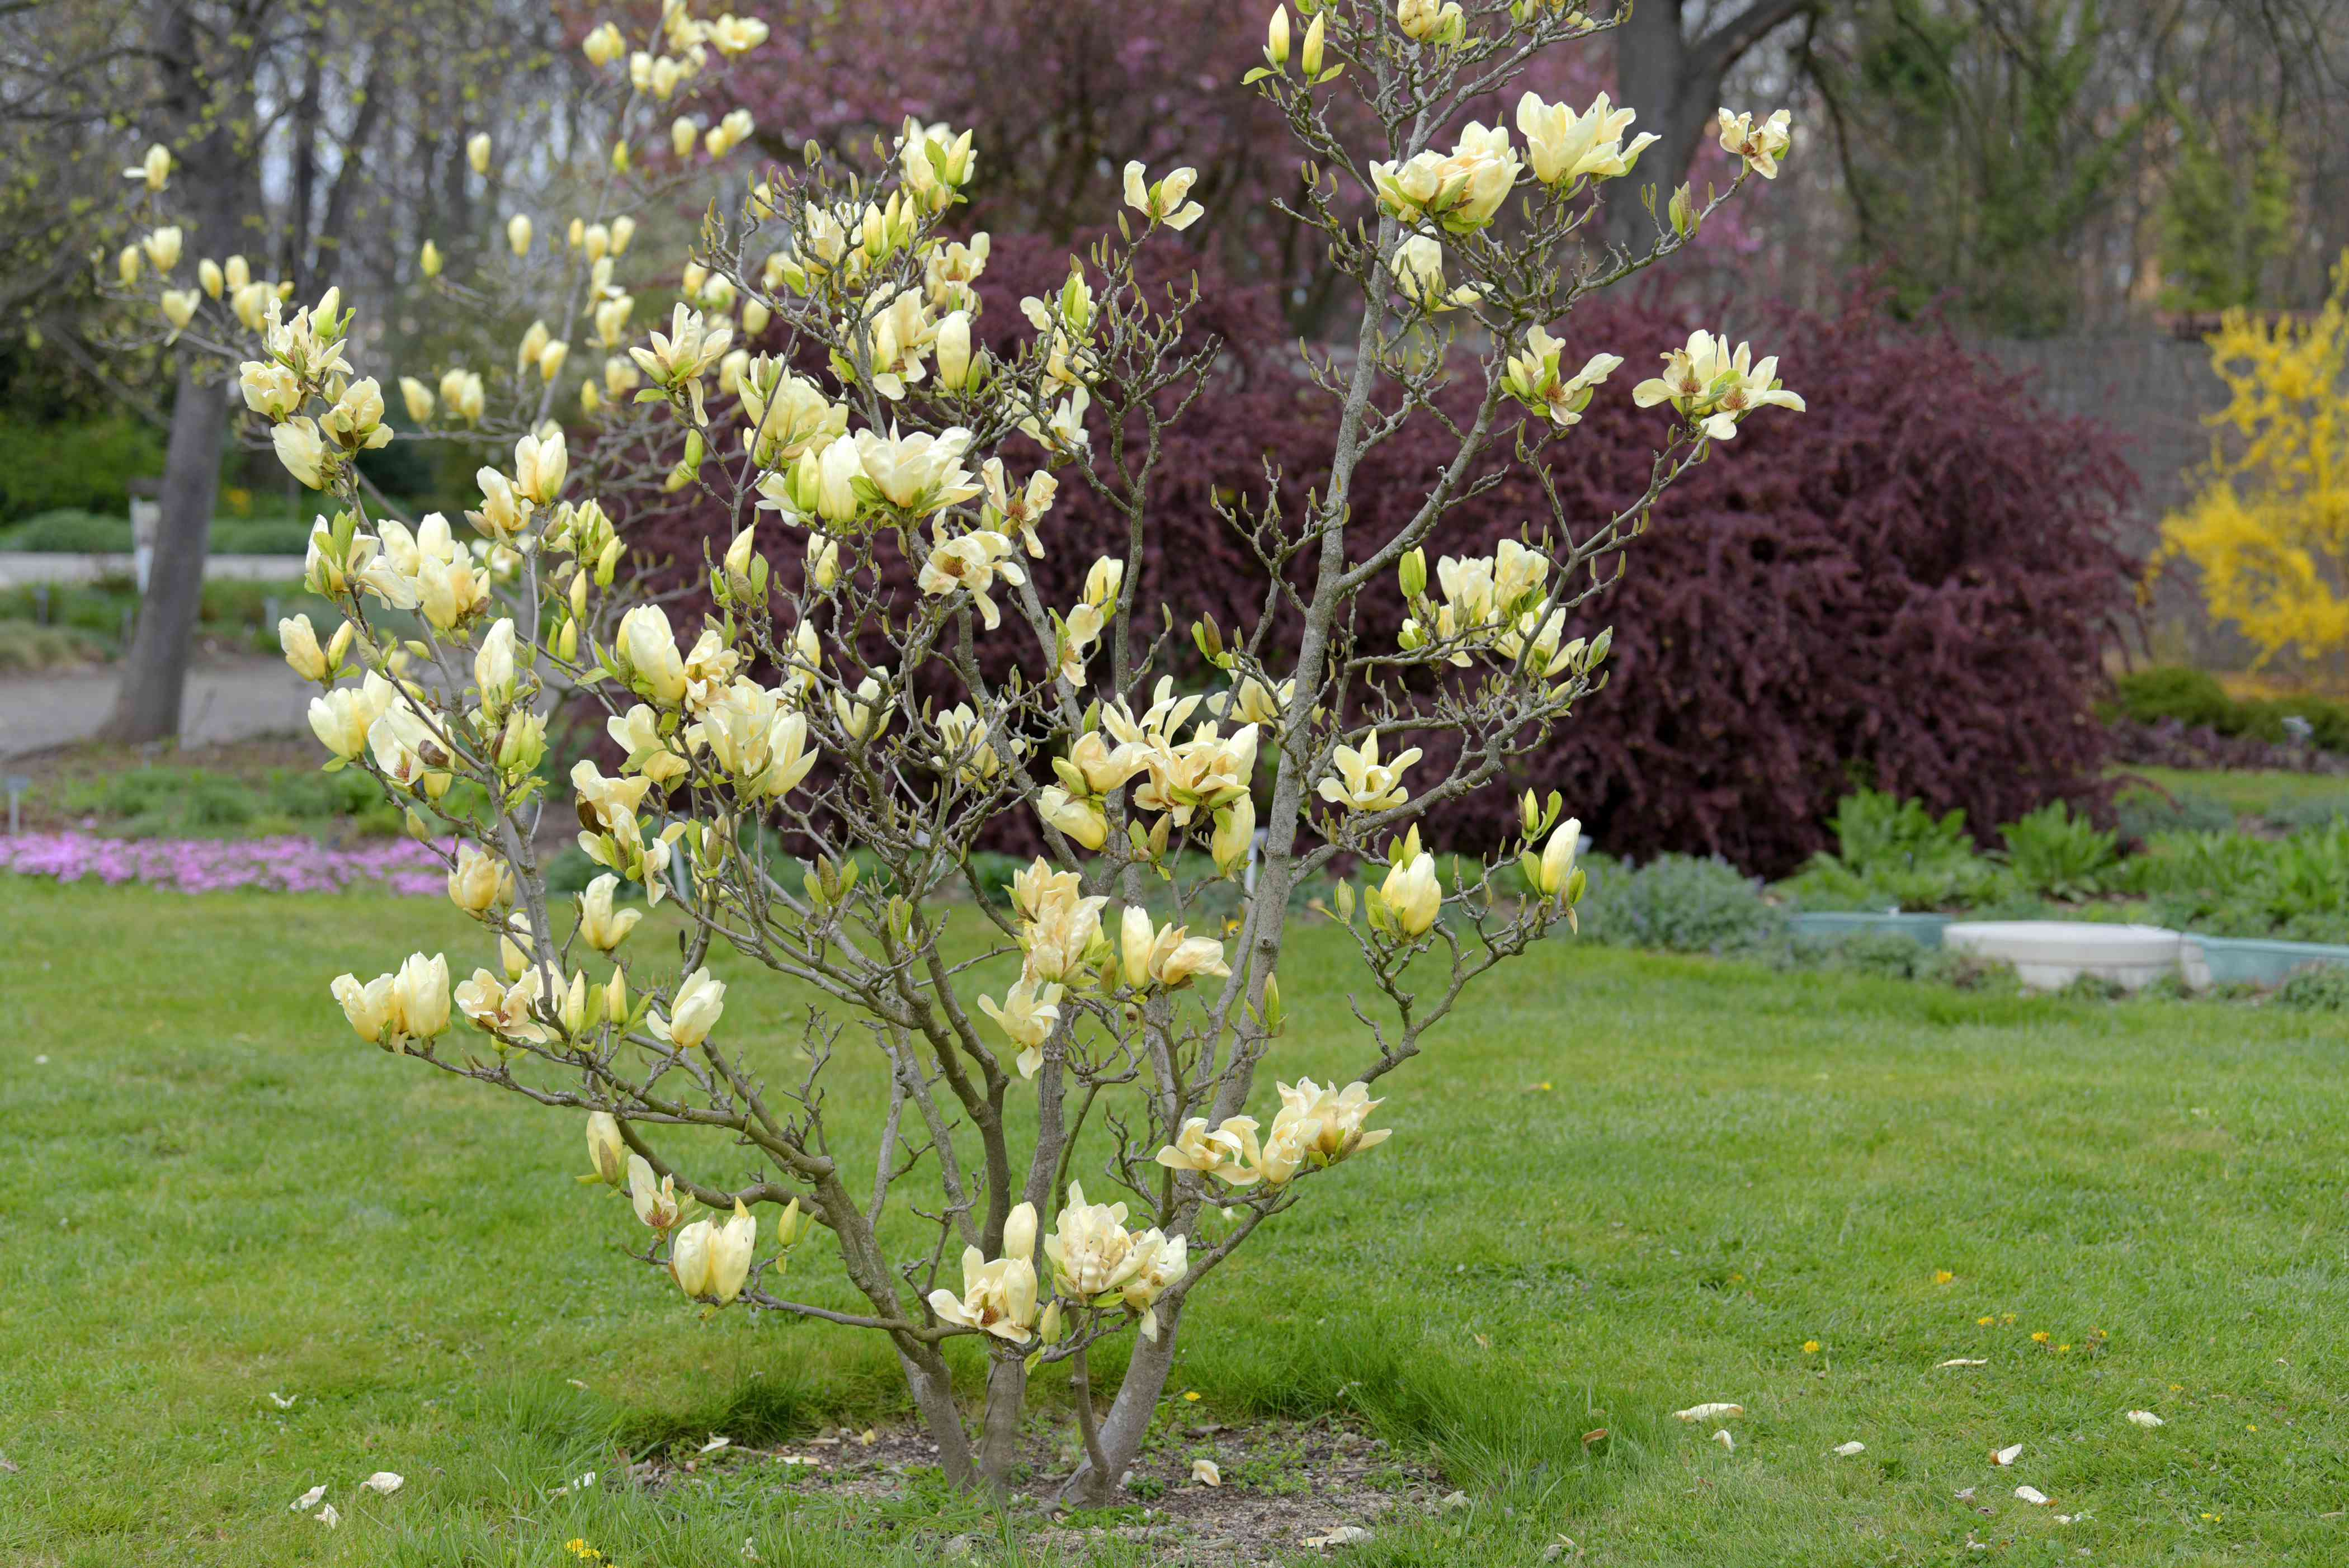 Cucumber tree with bare branches and large yellow-green flowers in garden